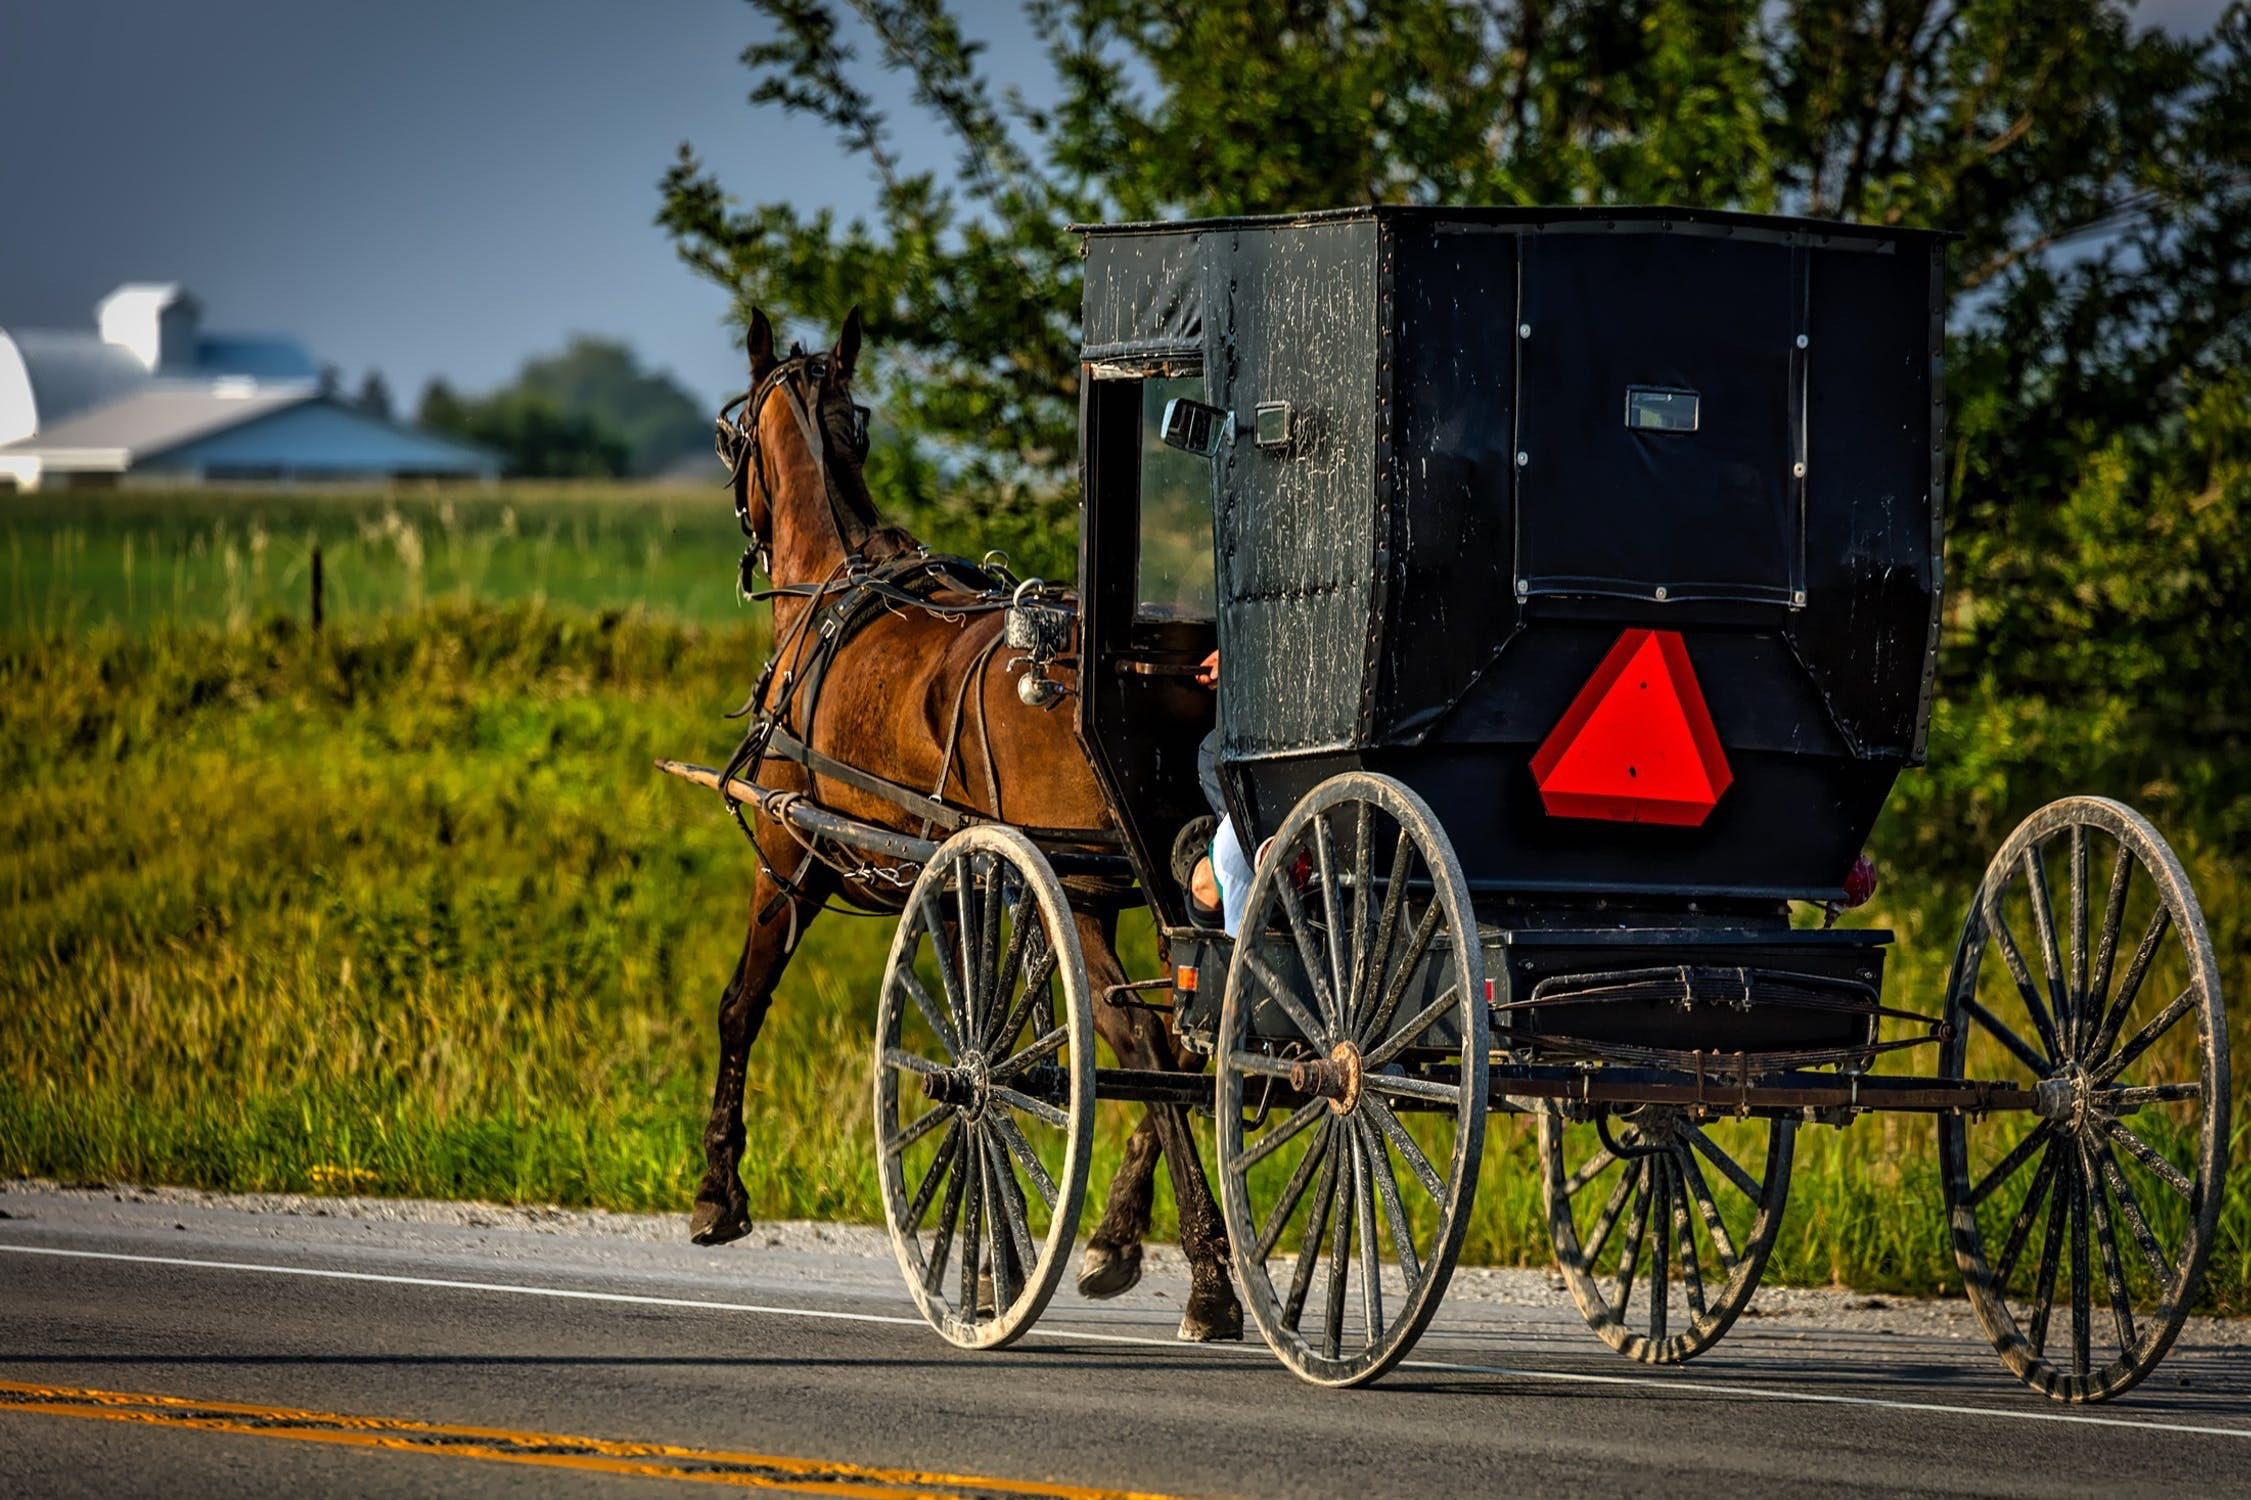 Getting food from the Amish is better, right?